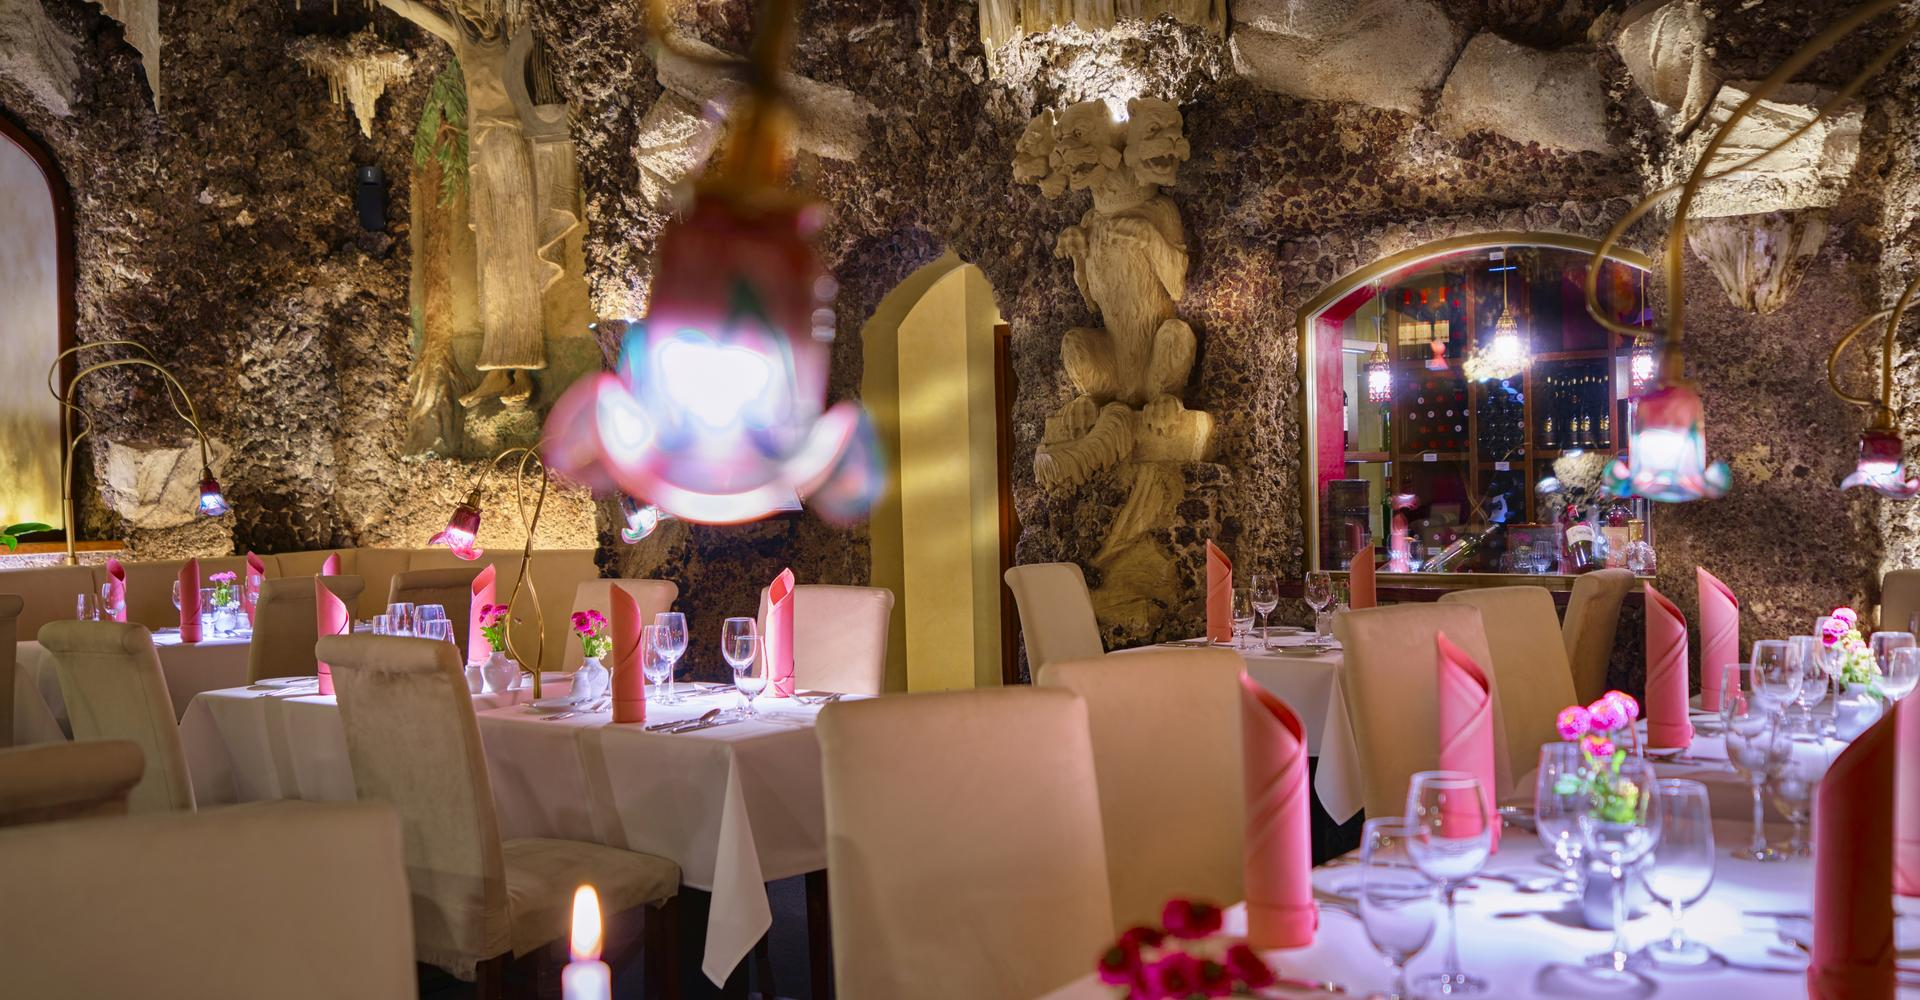 Boxing day menu - Gourmet restaurant in Prague city center